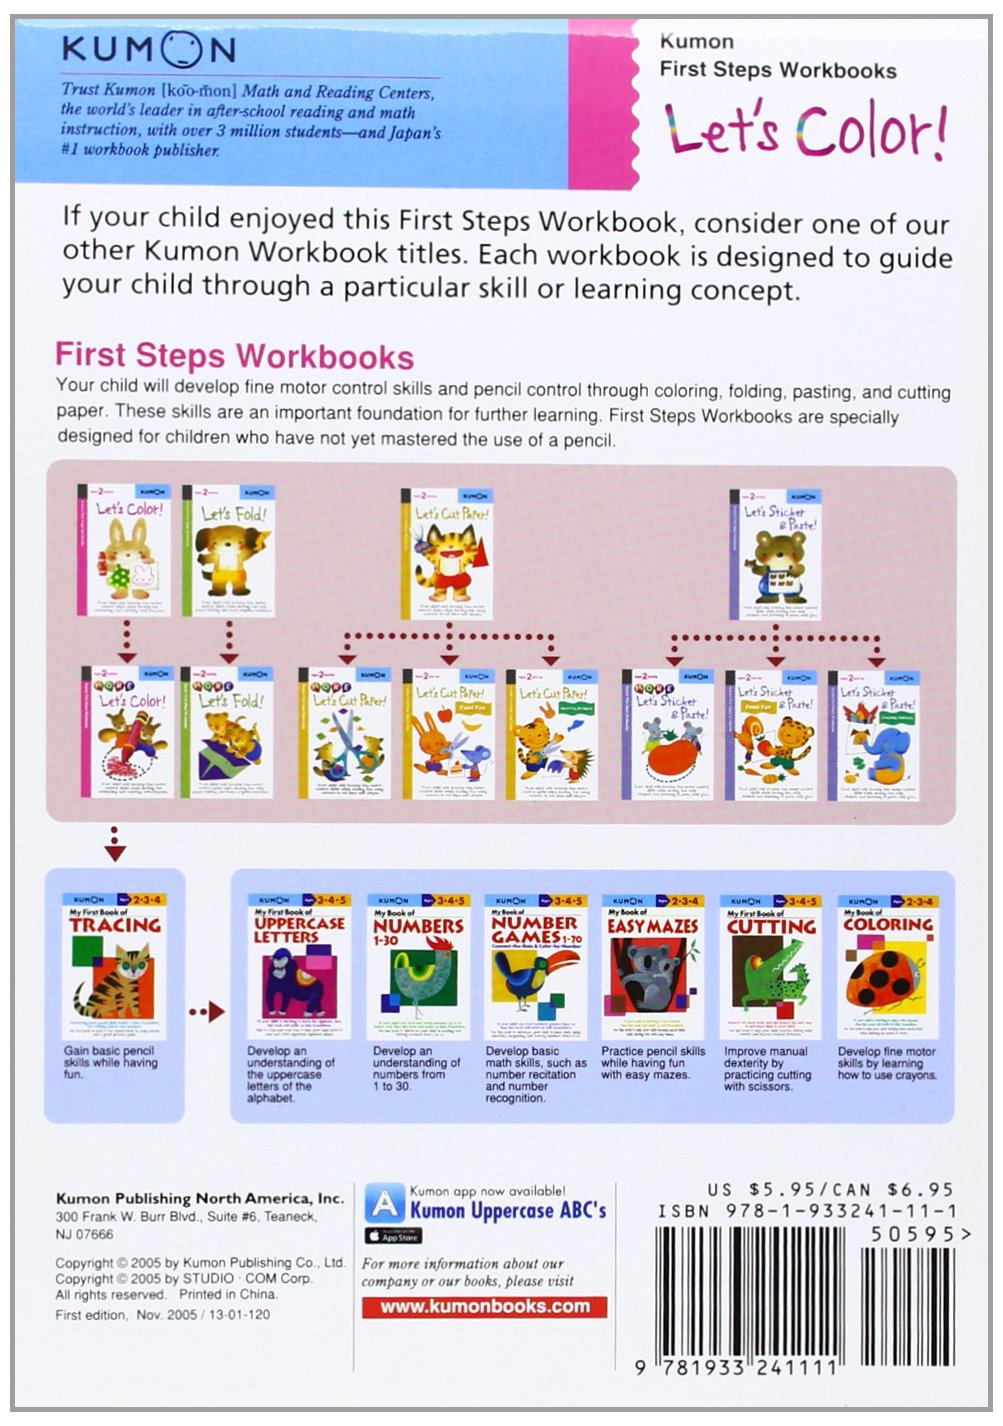 Workbooks buy kumon workbooks : Let's Color! (Kumon Workbooks): Amazon.co.uk: Kumon Publishing ...